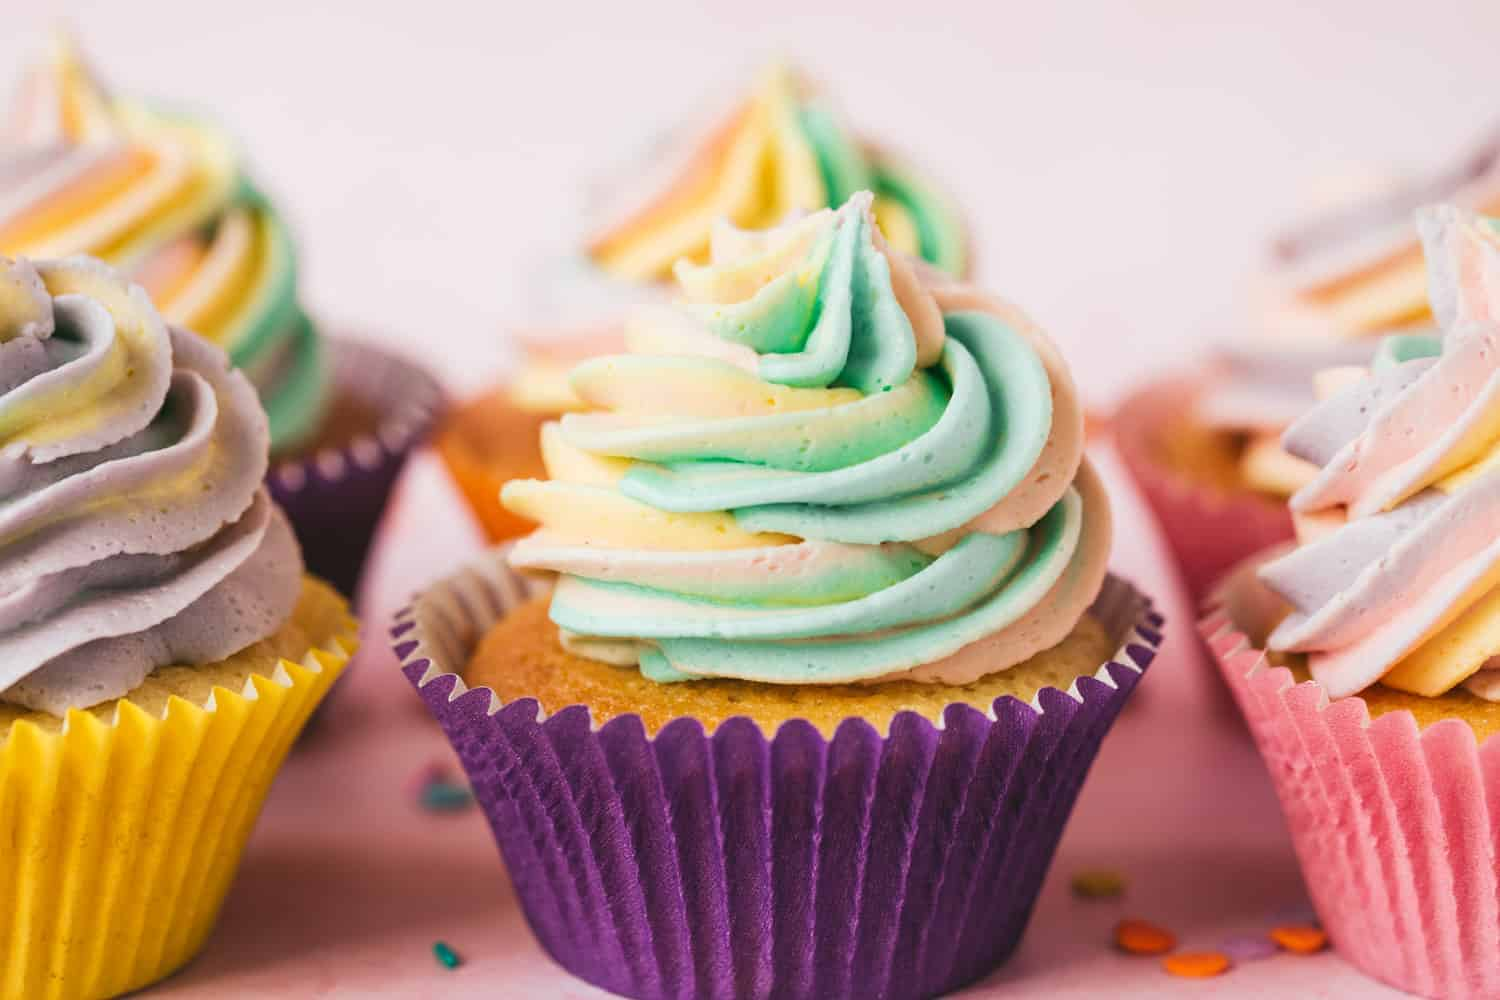 A row of piñata cupcakes topped with rainbow coloured icing